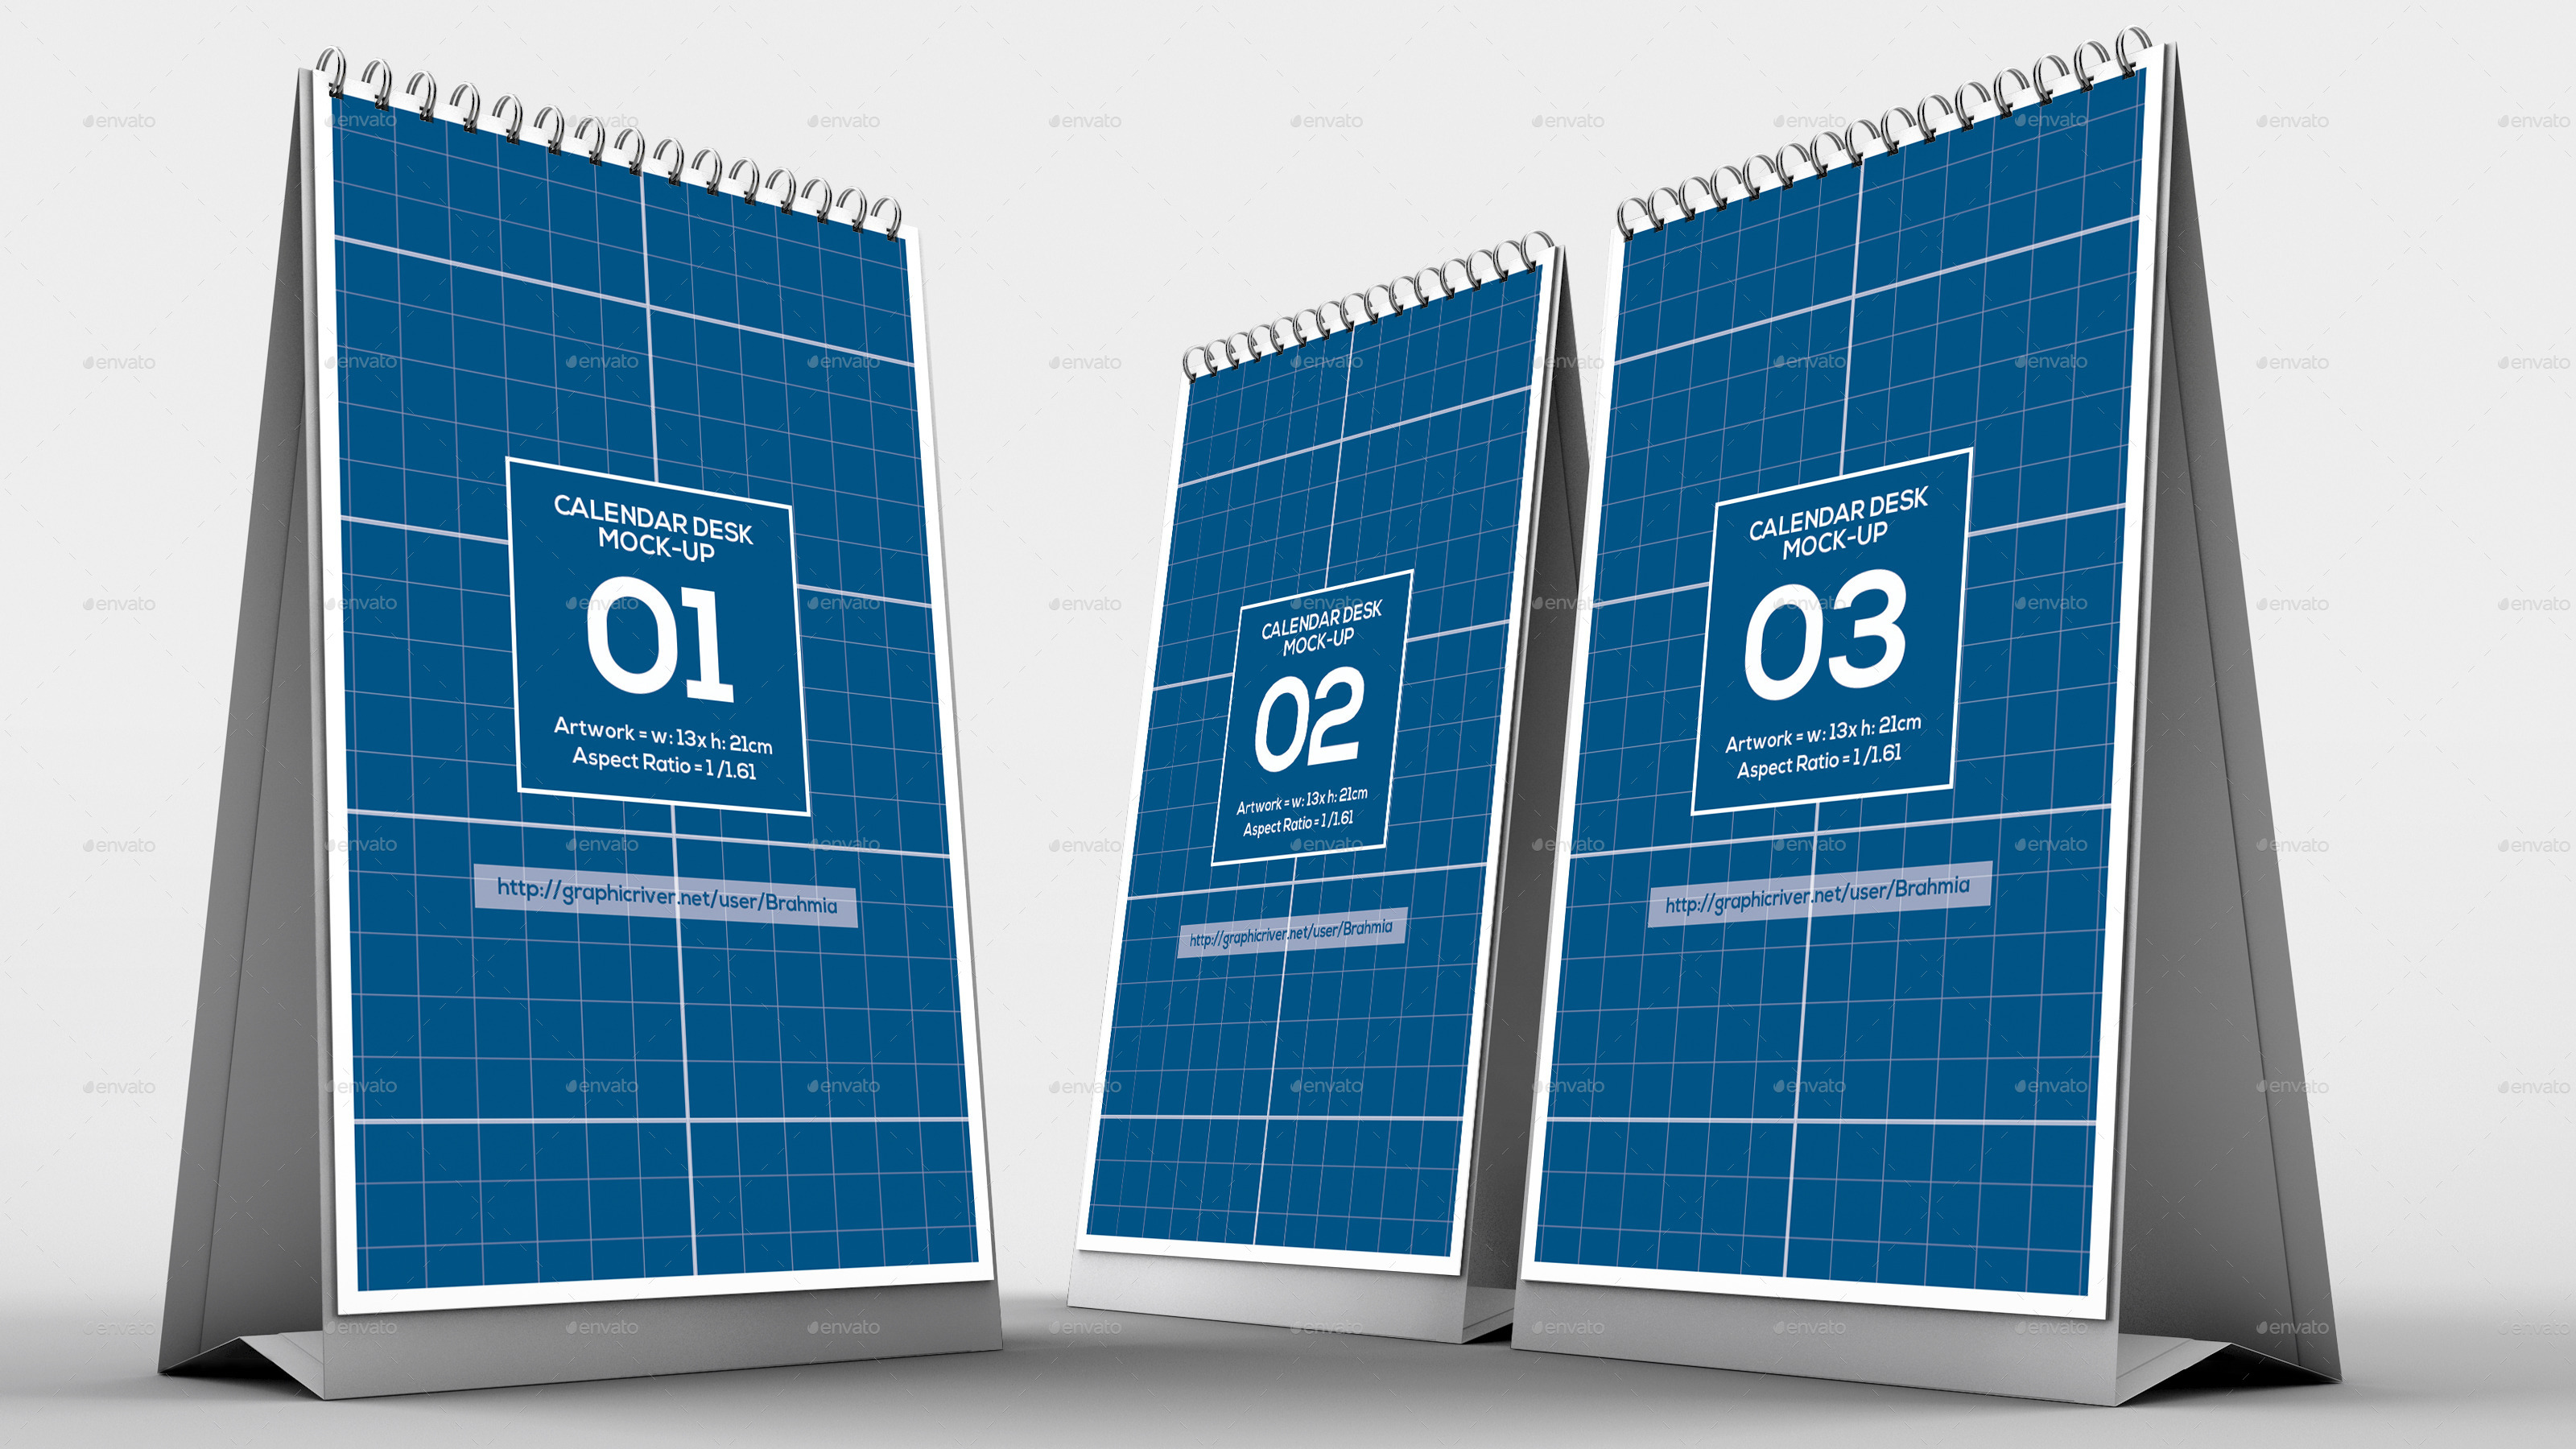 Table Calendar Mockup : Vertical calendar desk mockup by brahmia graphicriver